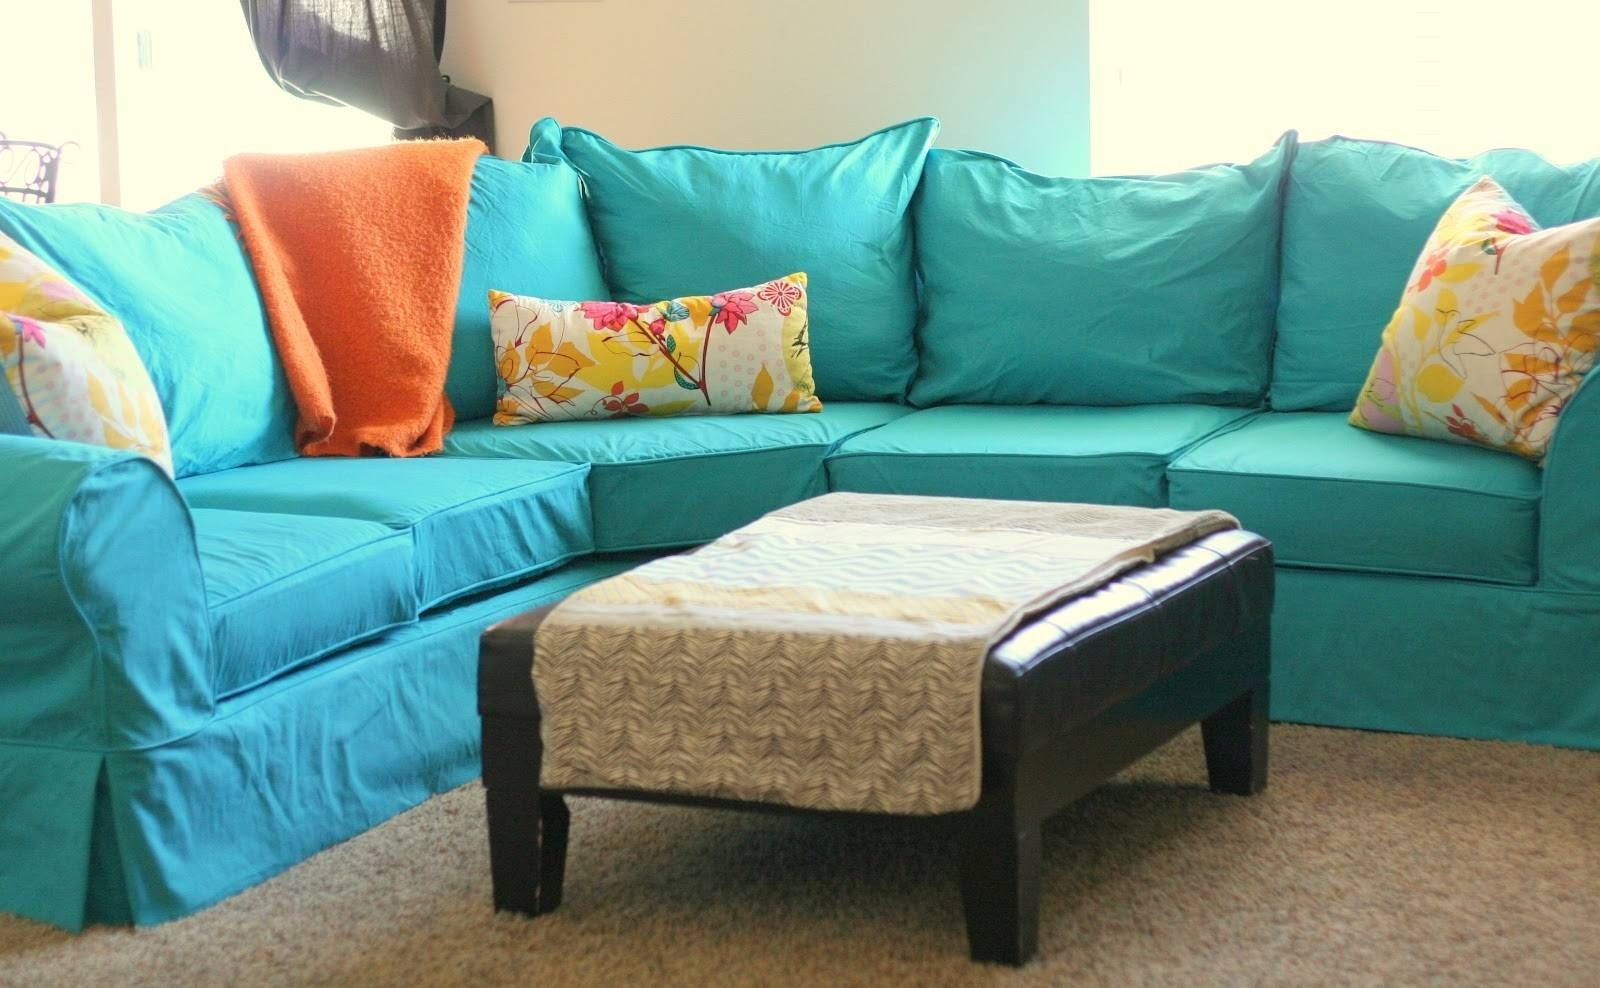 Living Room: 3 Piece Couch Covers | L Shaped Couch Covers intended for 3 Piece Sectional Sofa Slipcovers (Image 18 of 33)